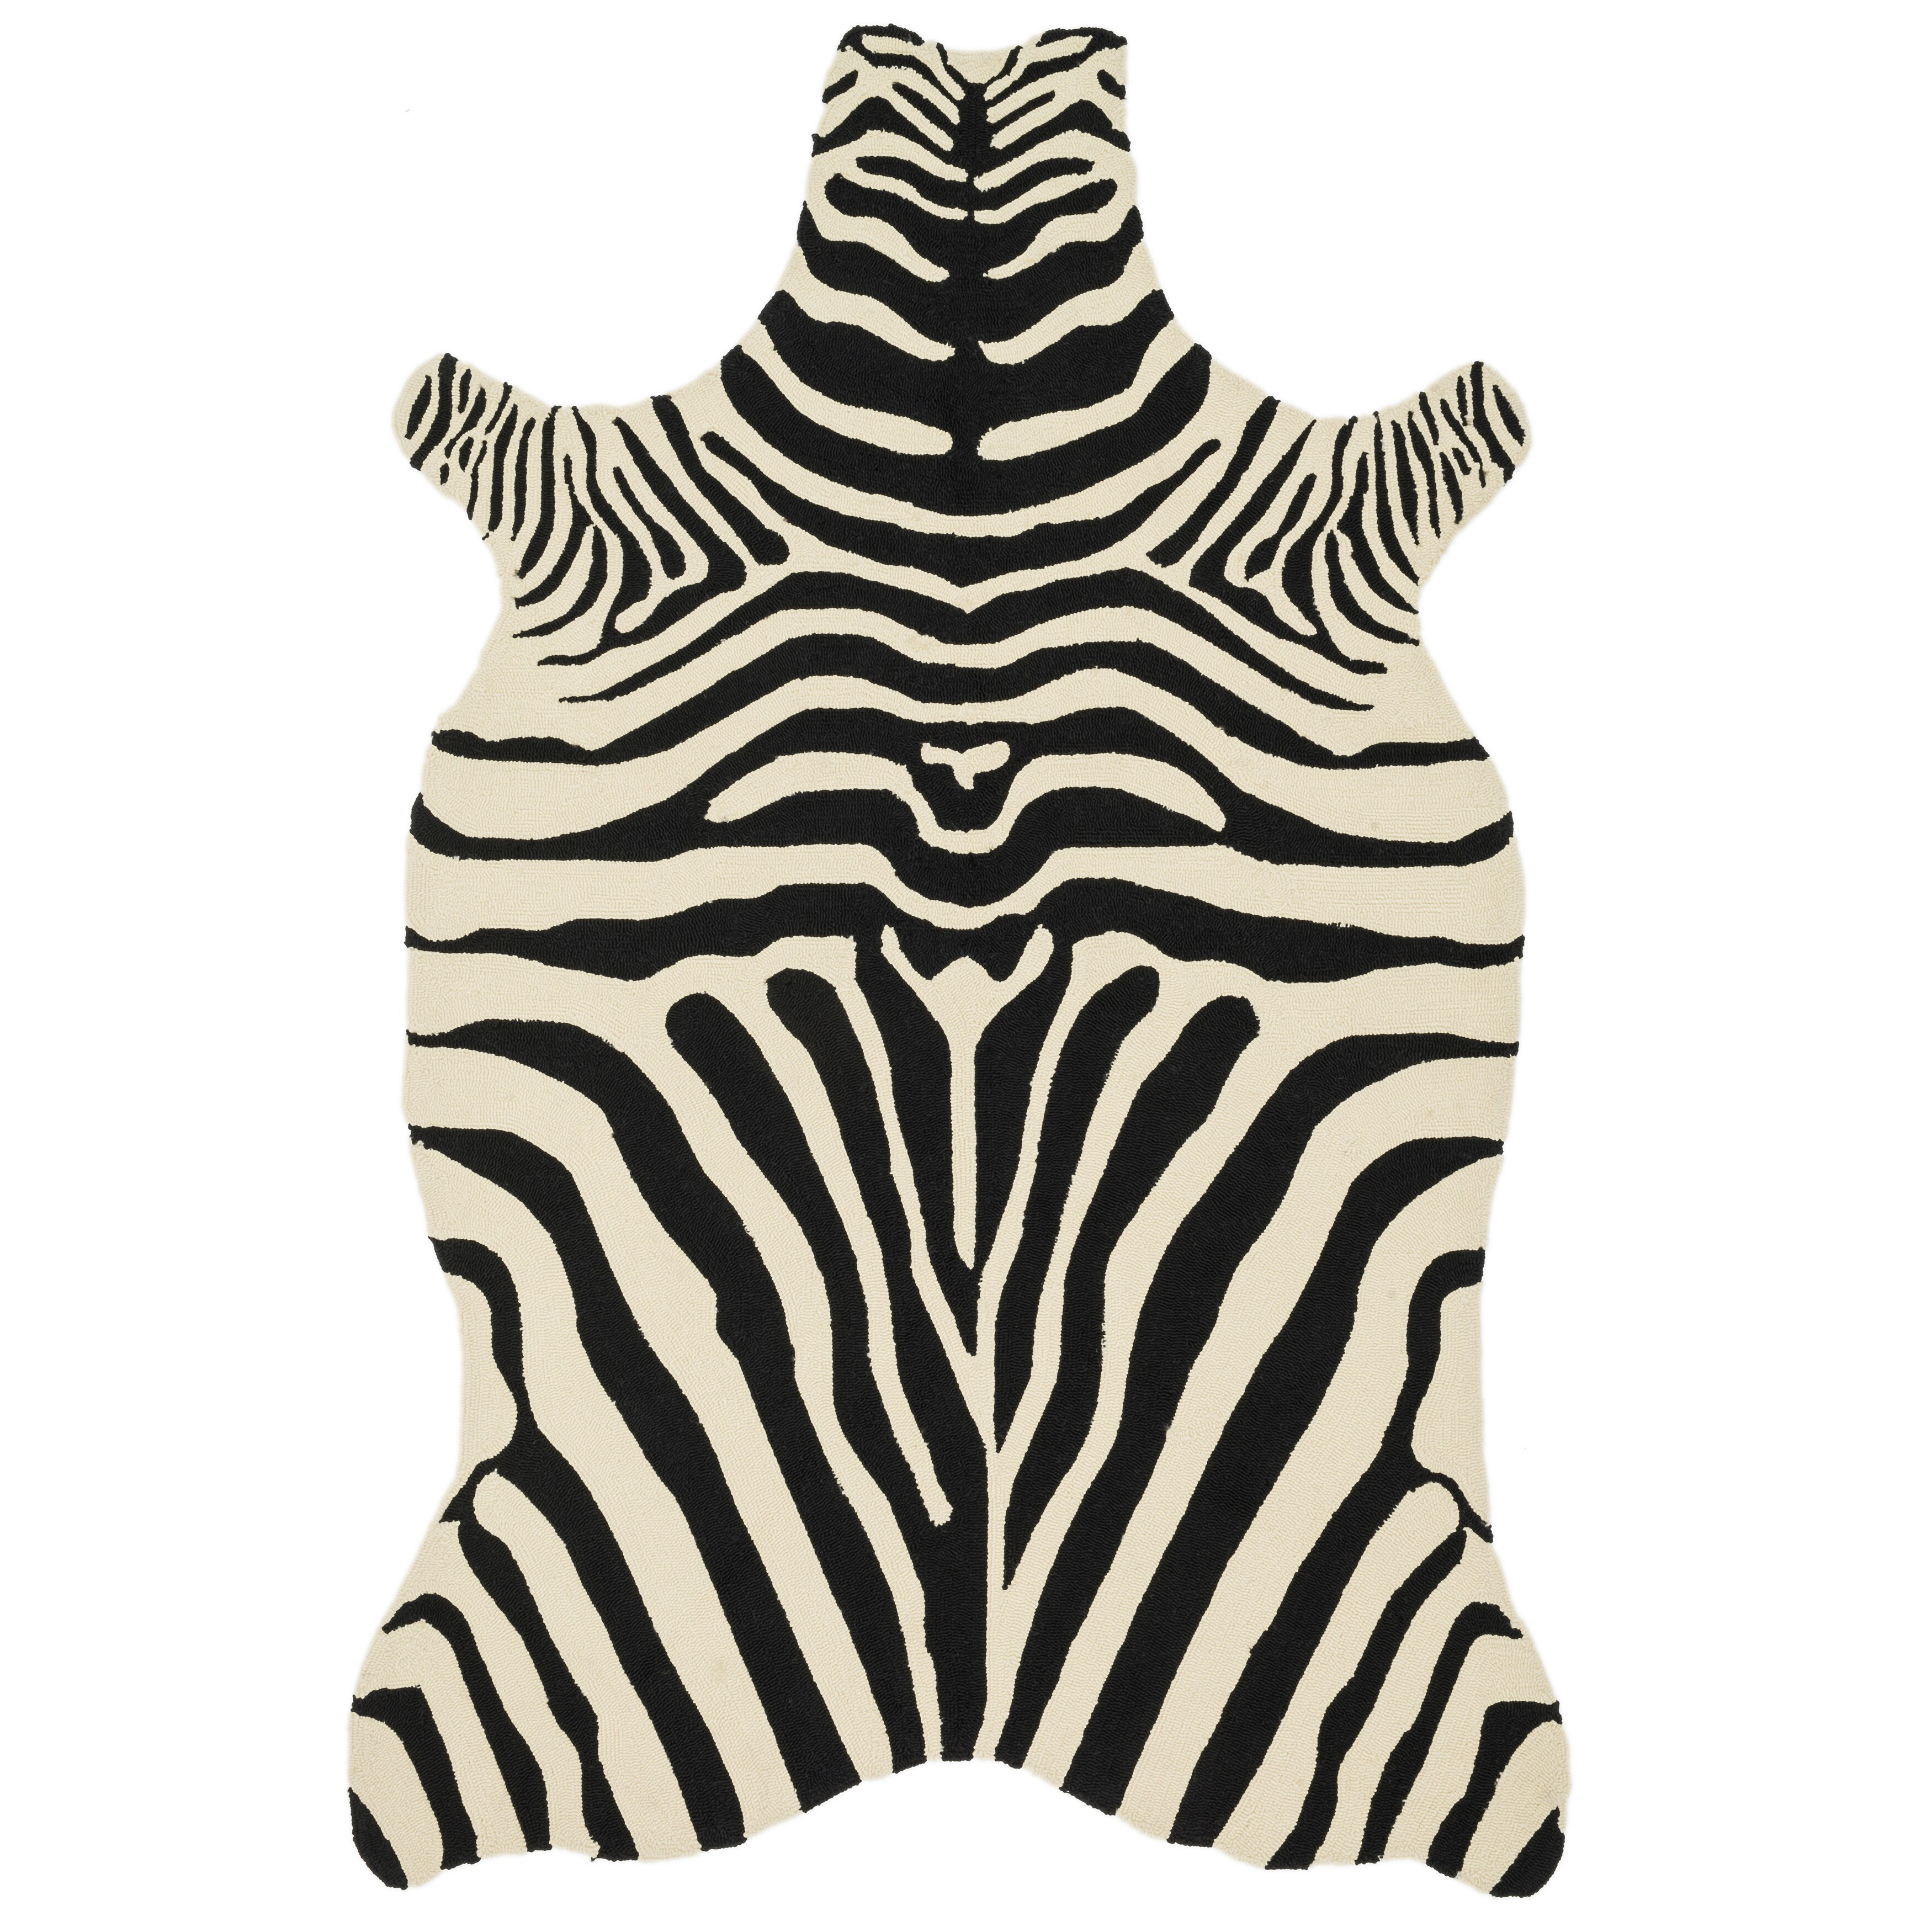 ideas flooring floorings skin charming captivating for rug rugs exquisite with and zebra design